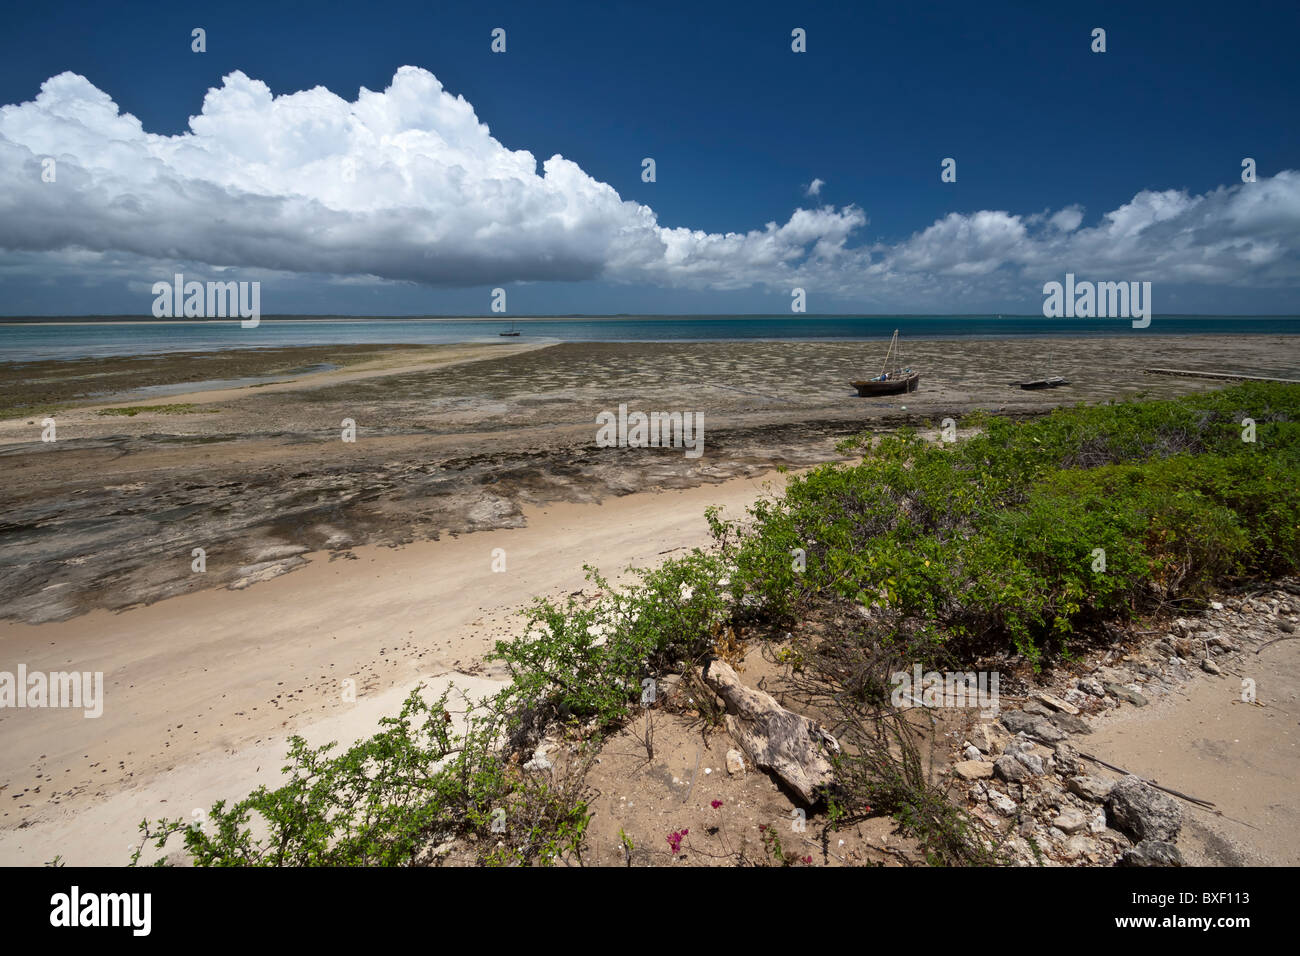 Foreshore looking into the Mafia Island marine reserve from Chole island - Stock Image